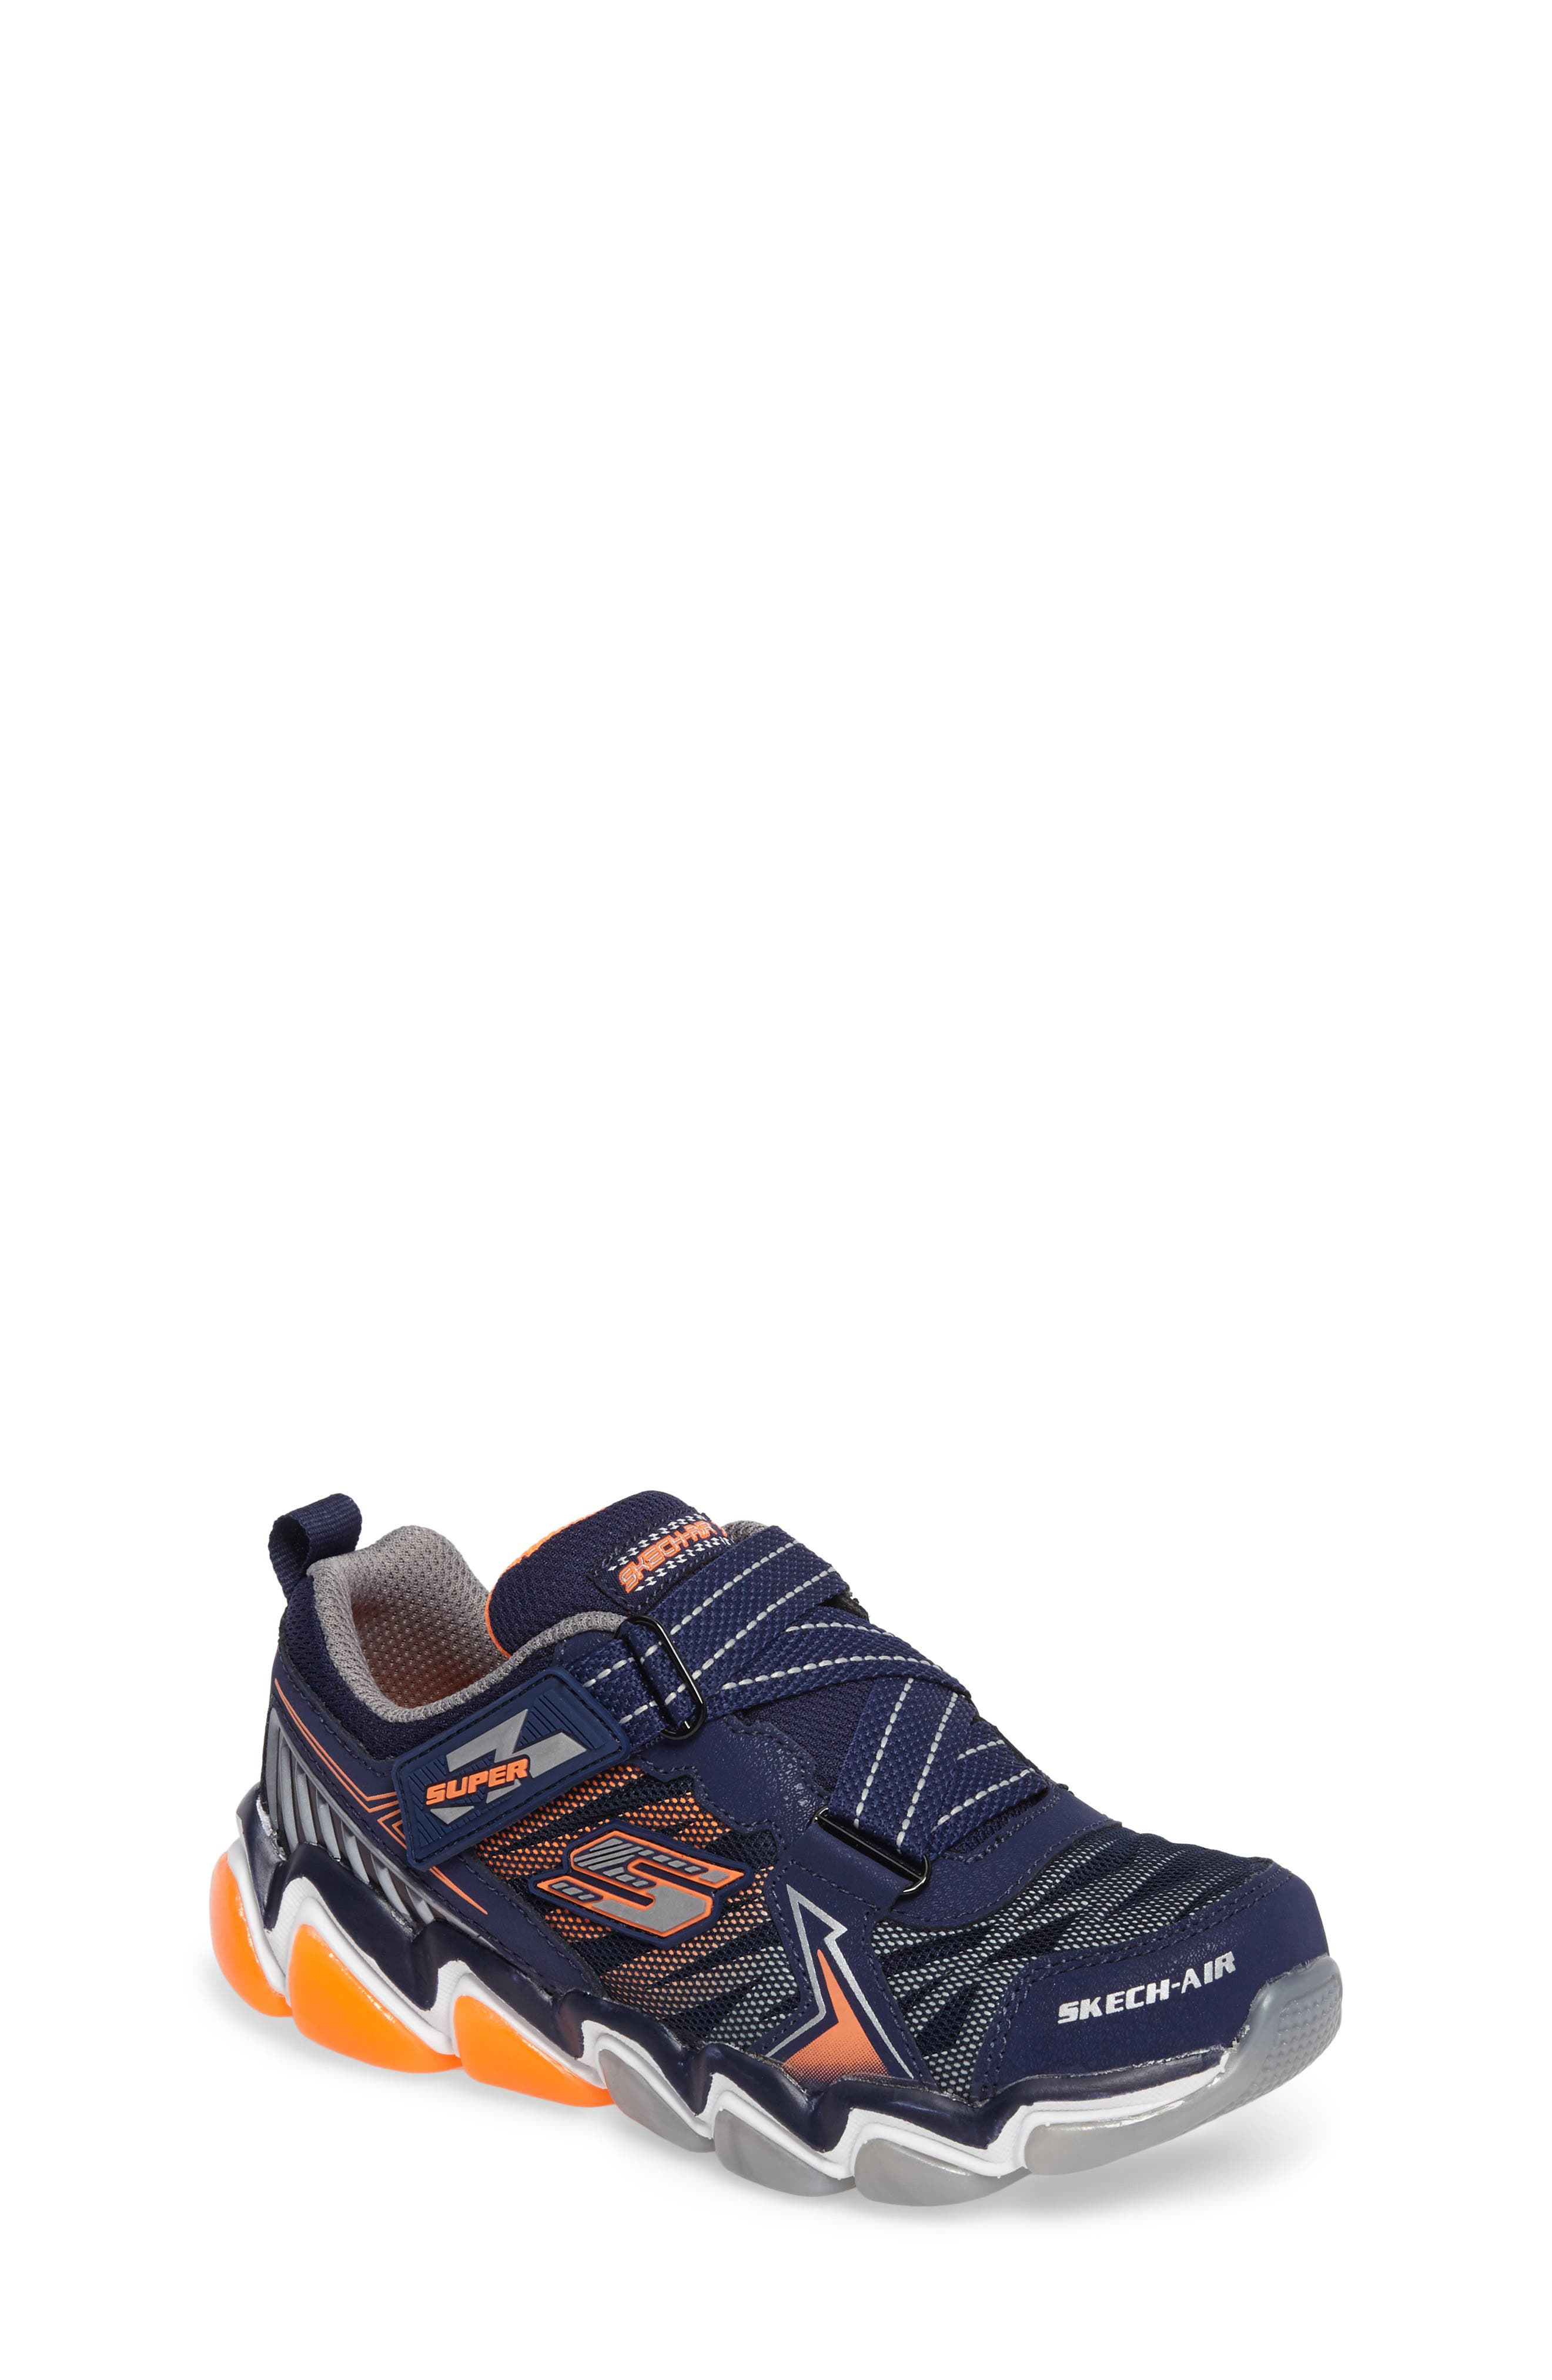 Main Image - SKECHERS Skech-Air 3.0 Downswitch Sneaker (Toddler, Little Kid & Big Kid)